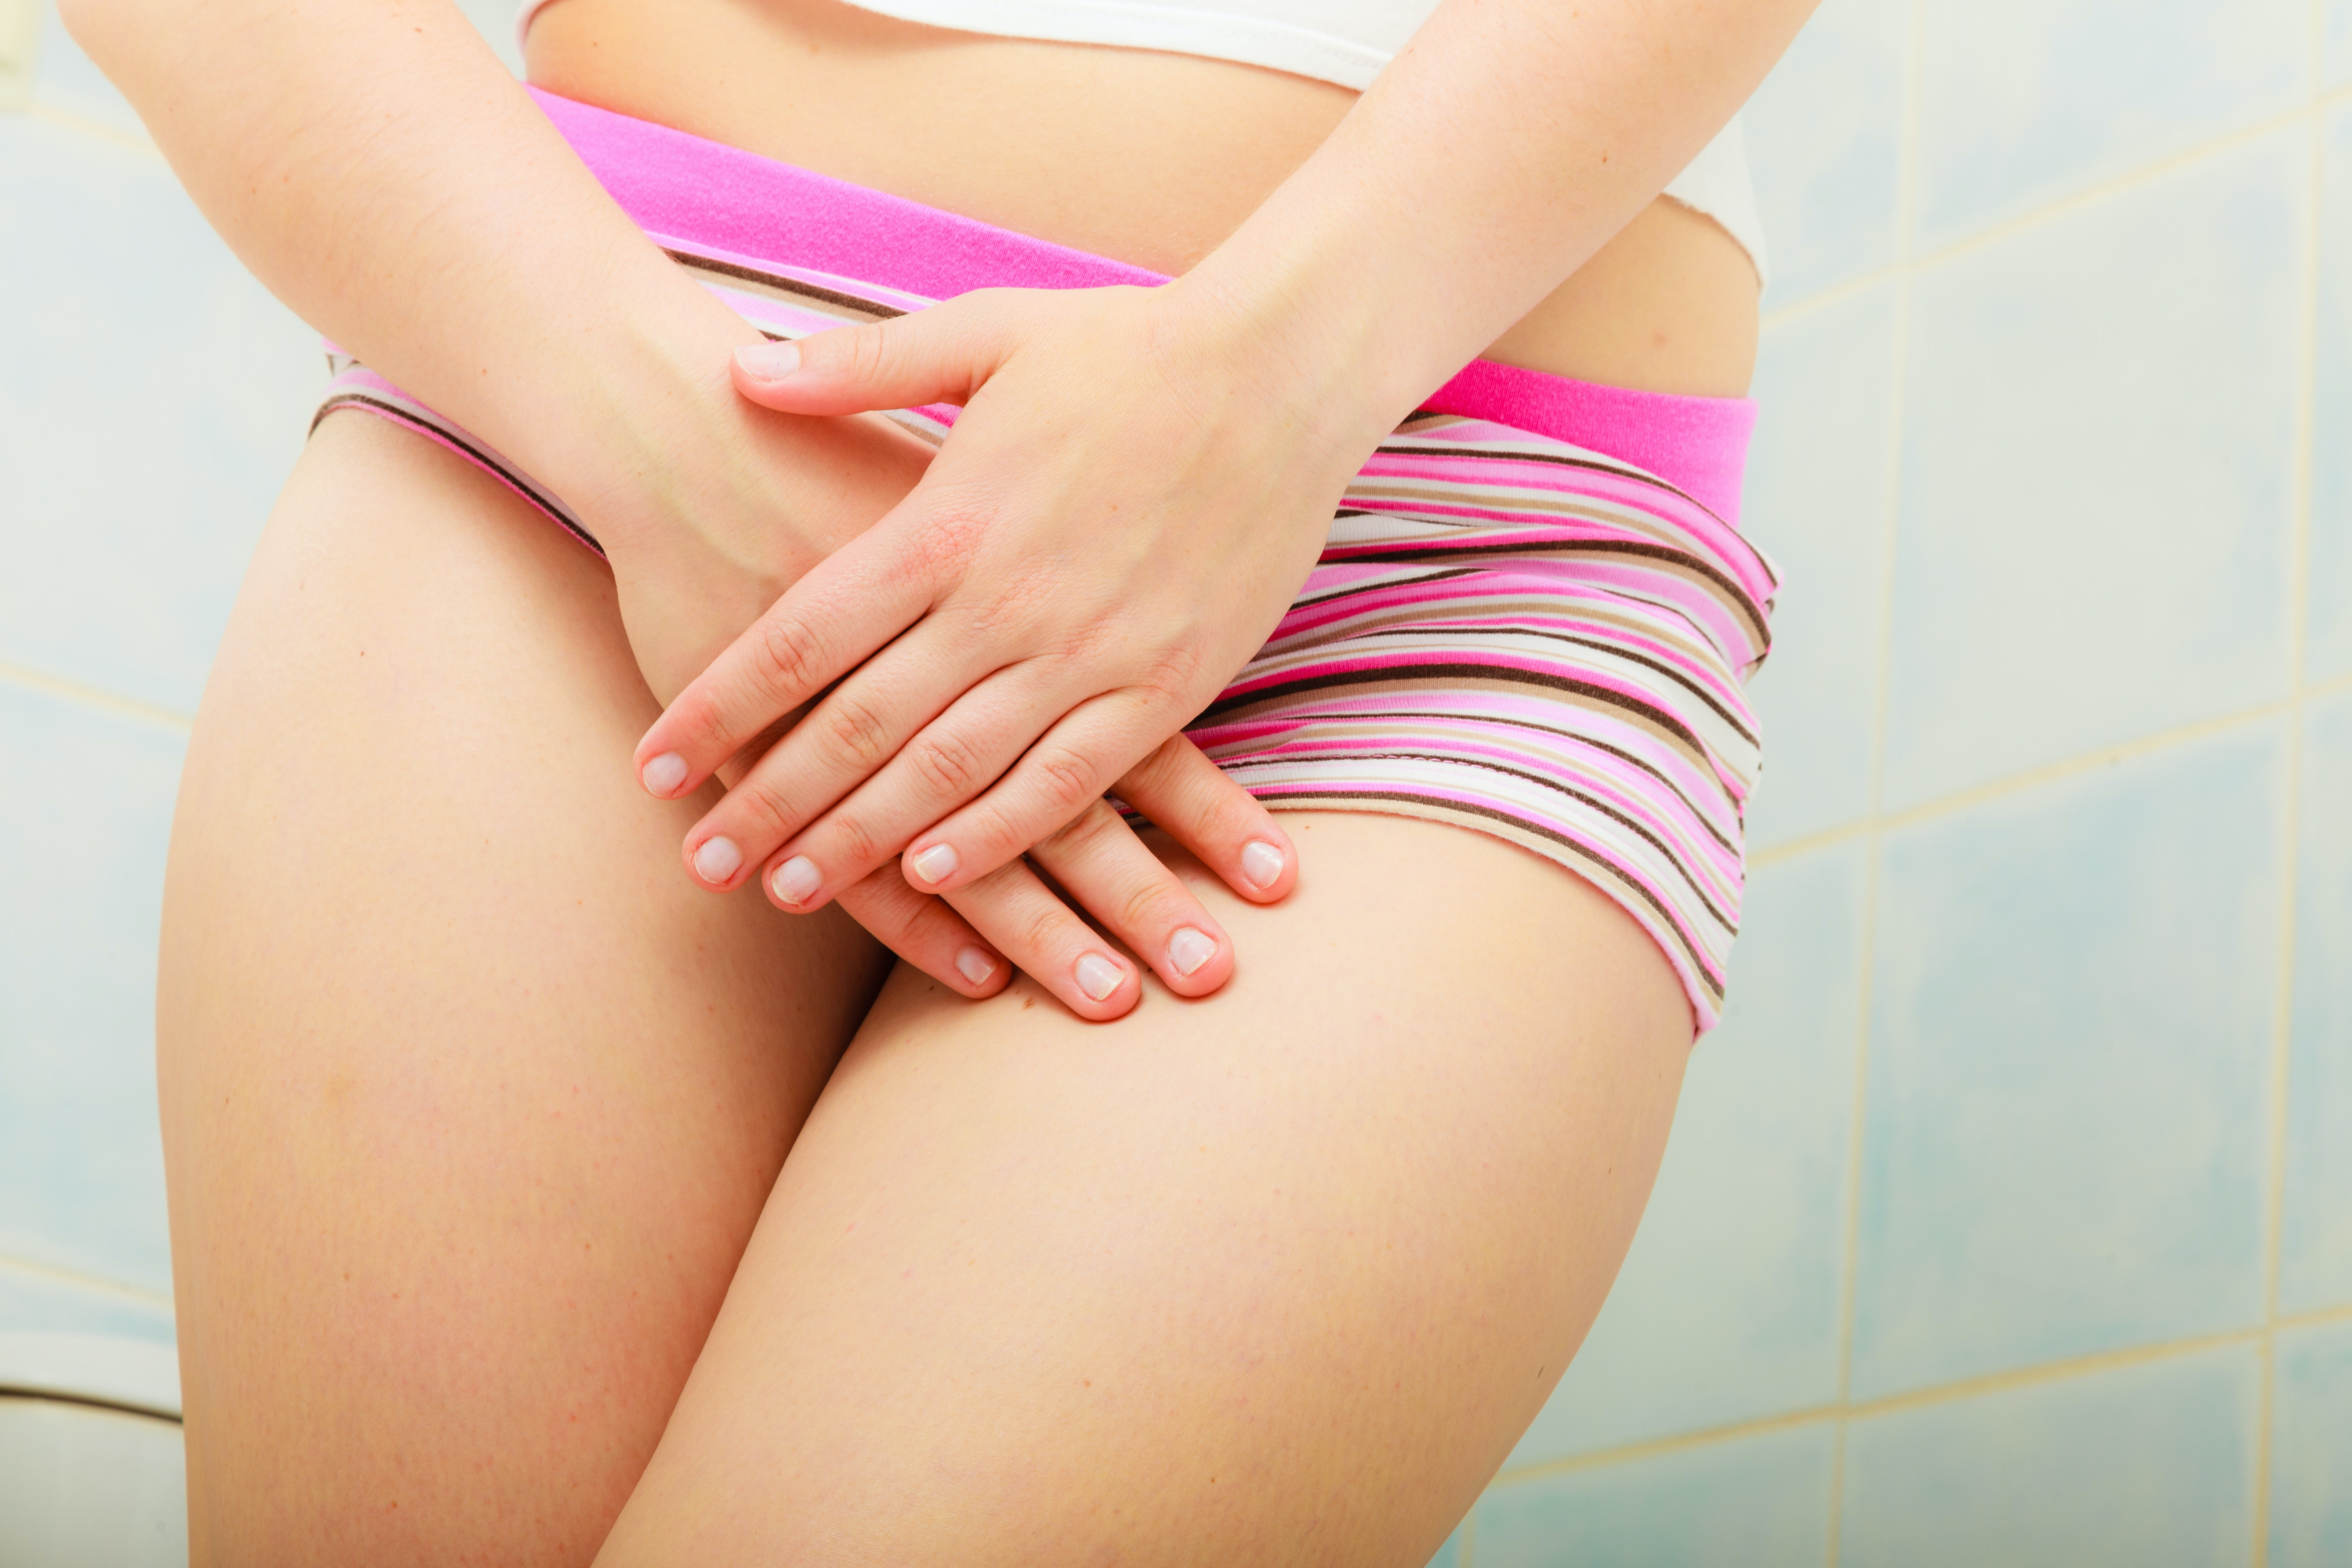 An image depicting a person suffering from skin-colored groin bump symptoms